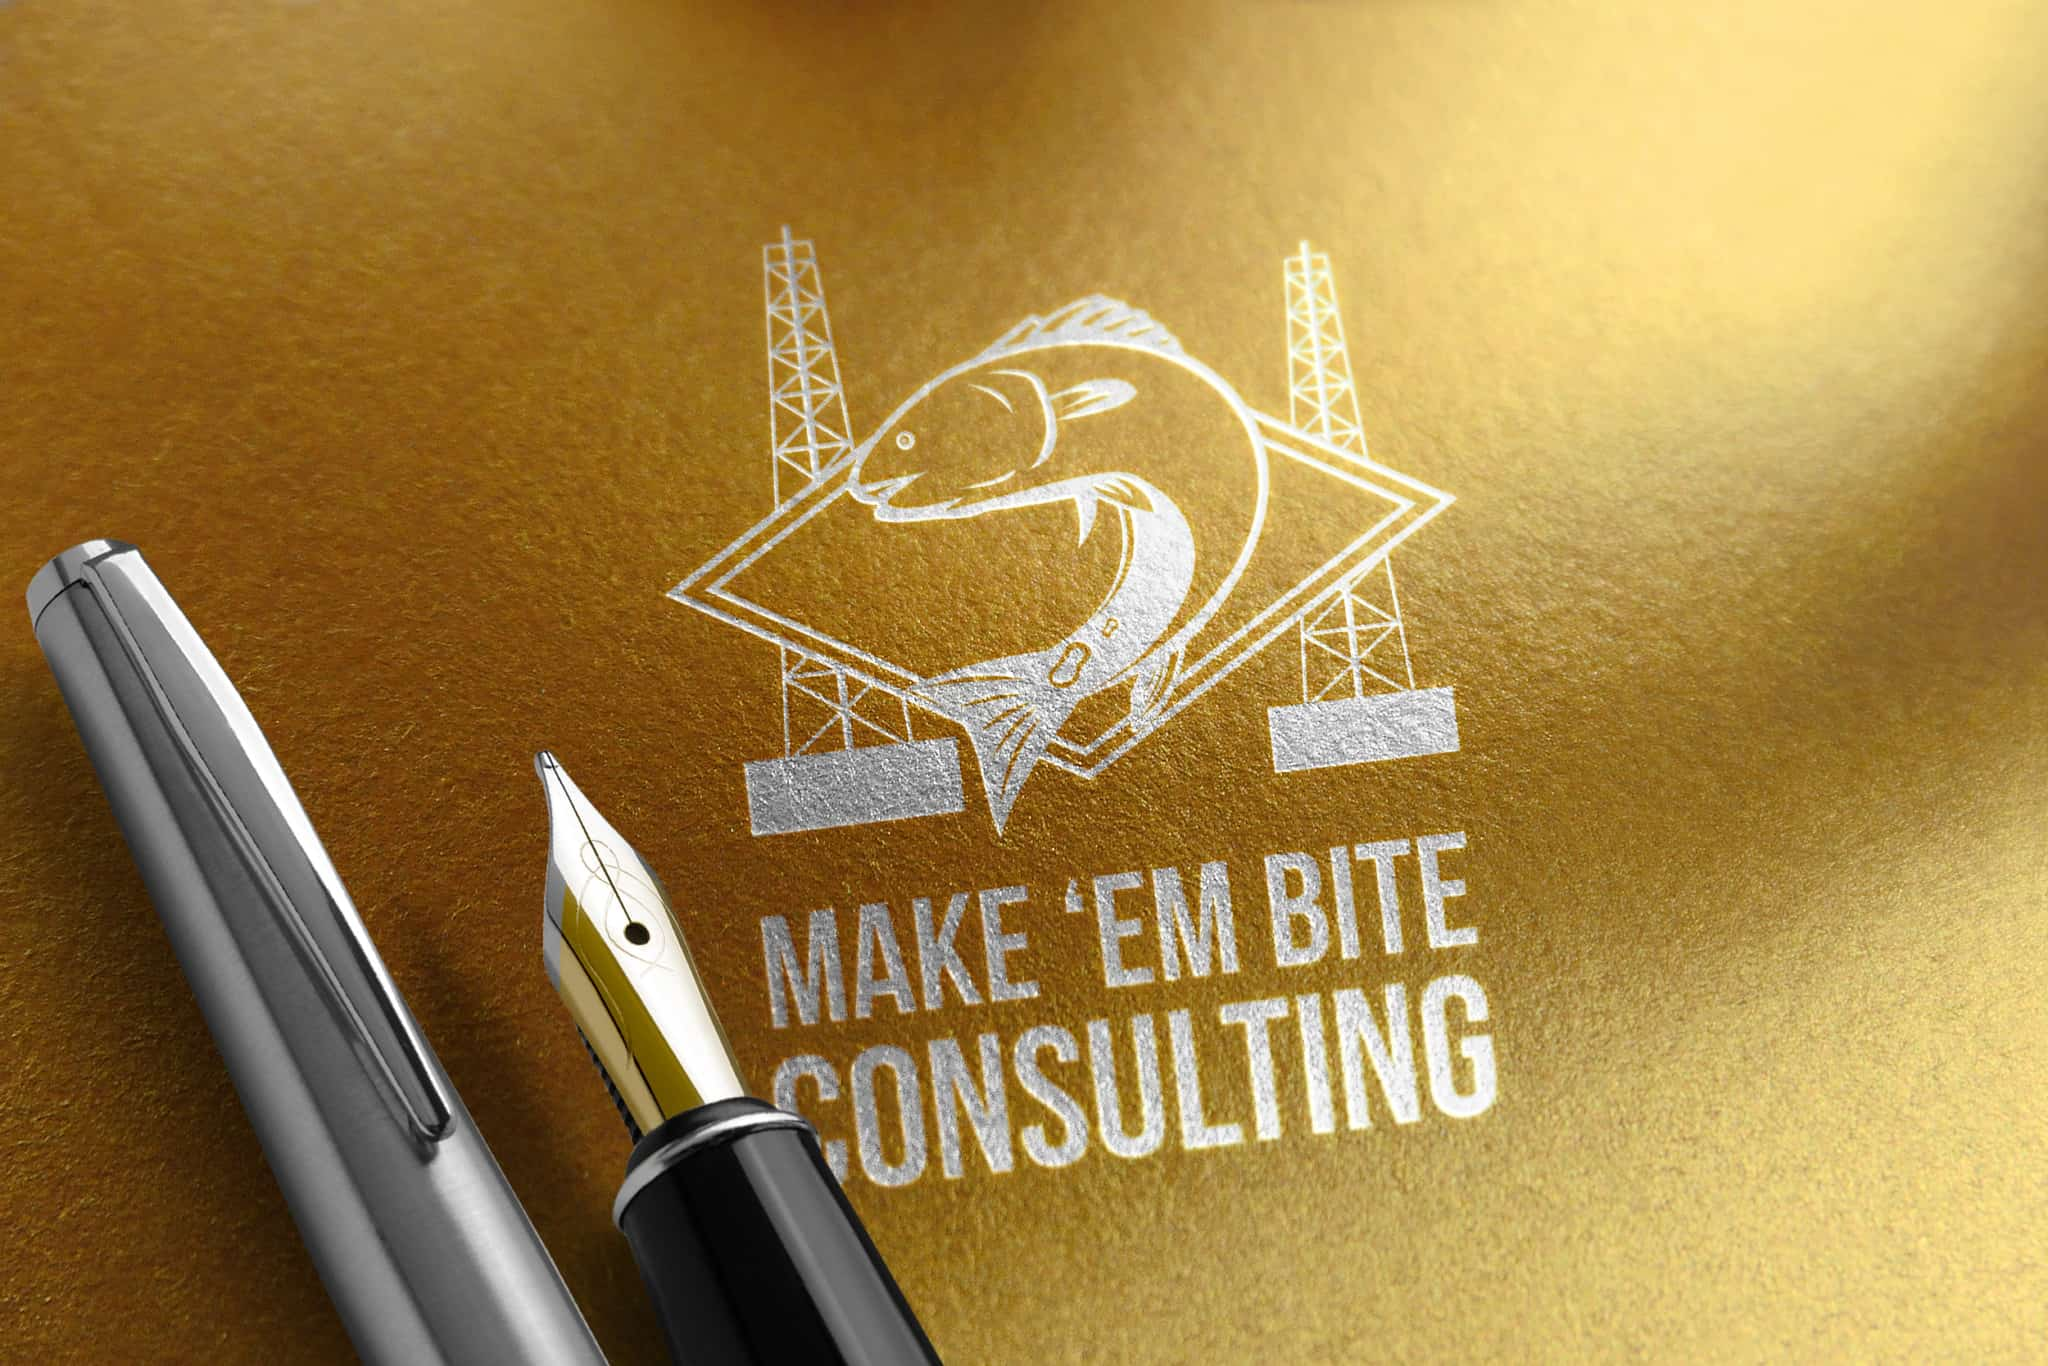 Make 'Em Bite Consulting